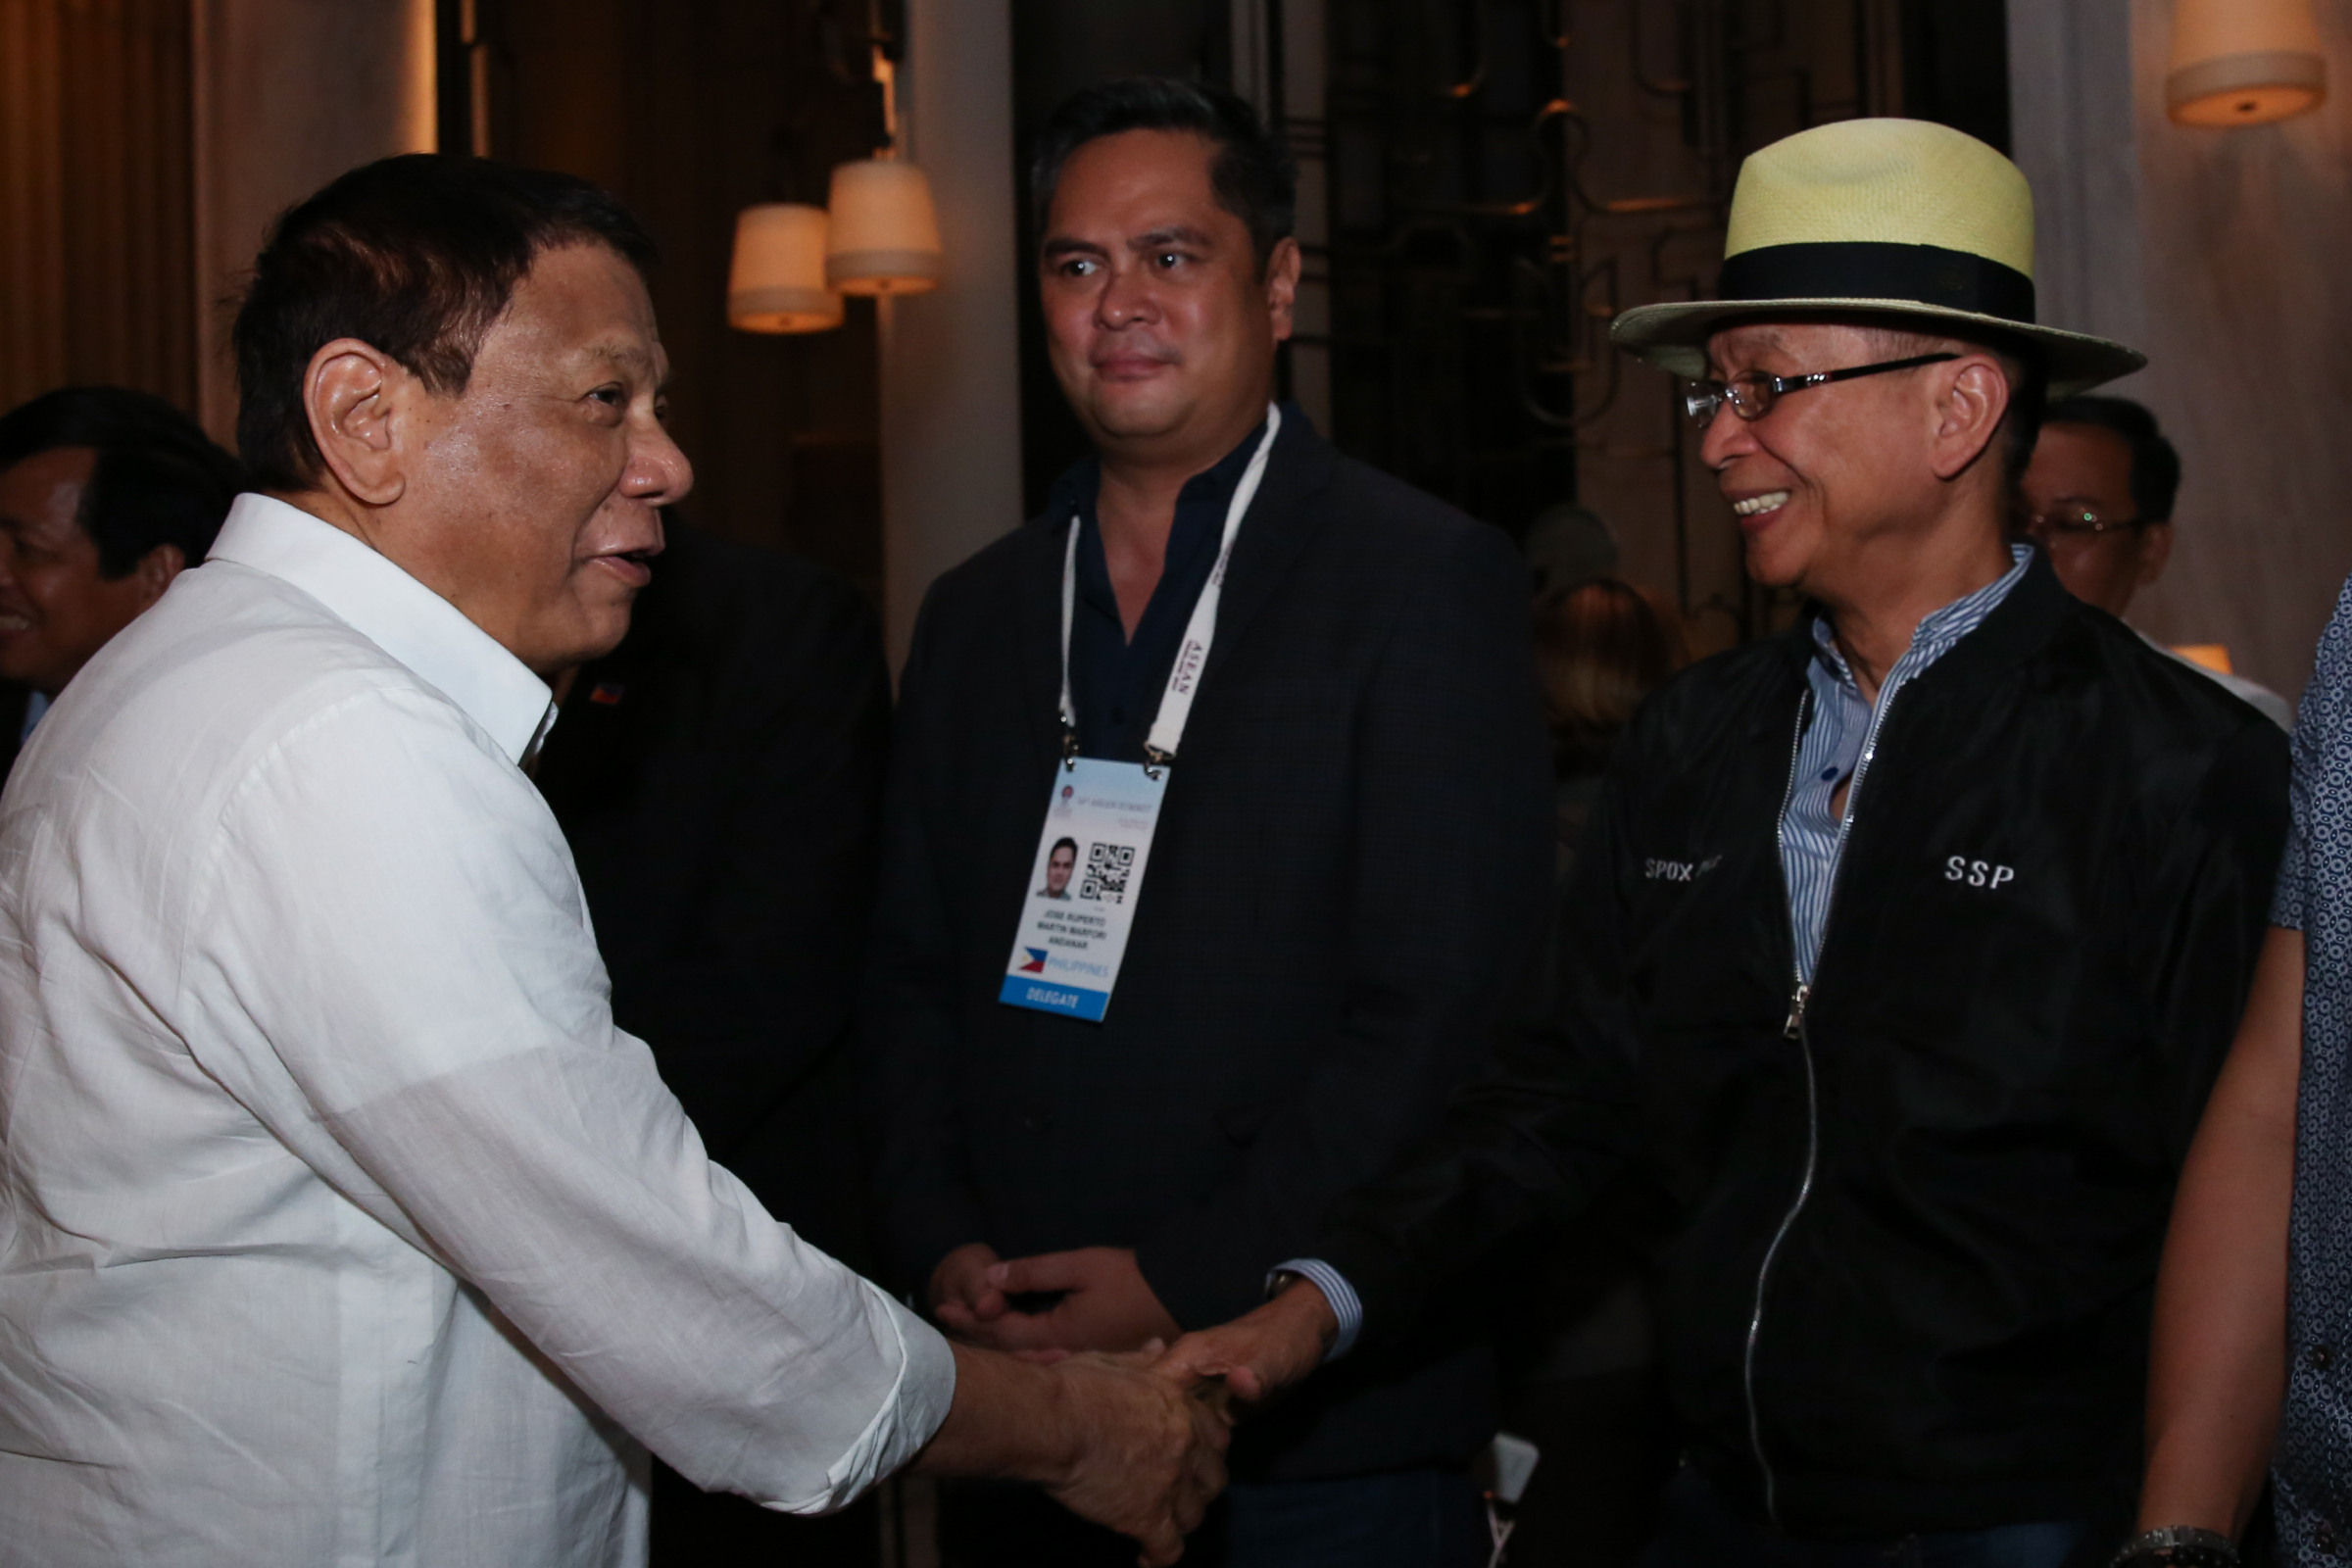 DUTERTE'S SPOKESMAN. Presidential Spokesperson Salvador Panelo (right) chats with President Rodrigo Duterte (left) and Communications Secretary Martin Andanar (center) upon the chief executive's arrival in a hotel in Bangkok, Thailand on June 21, 2019. Malacau00f1ang photo